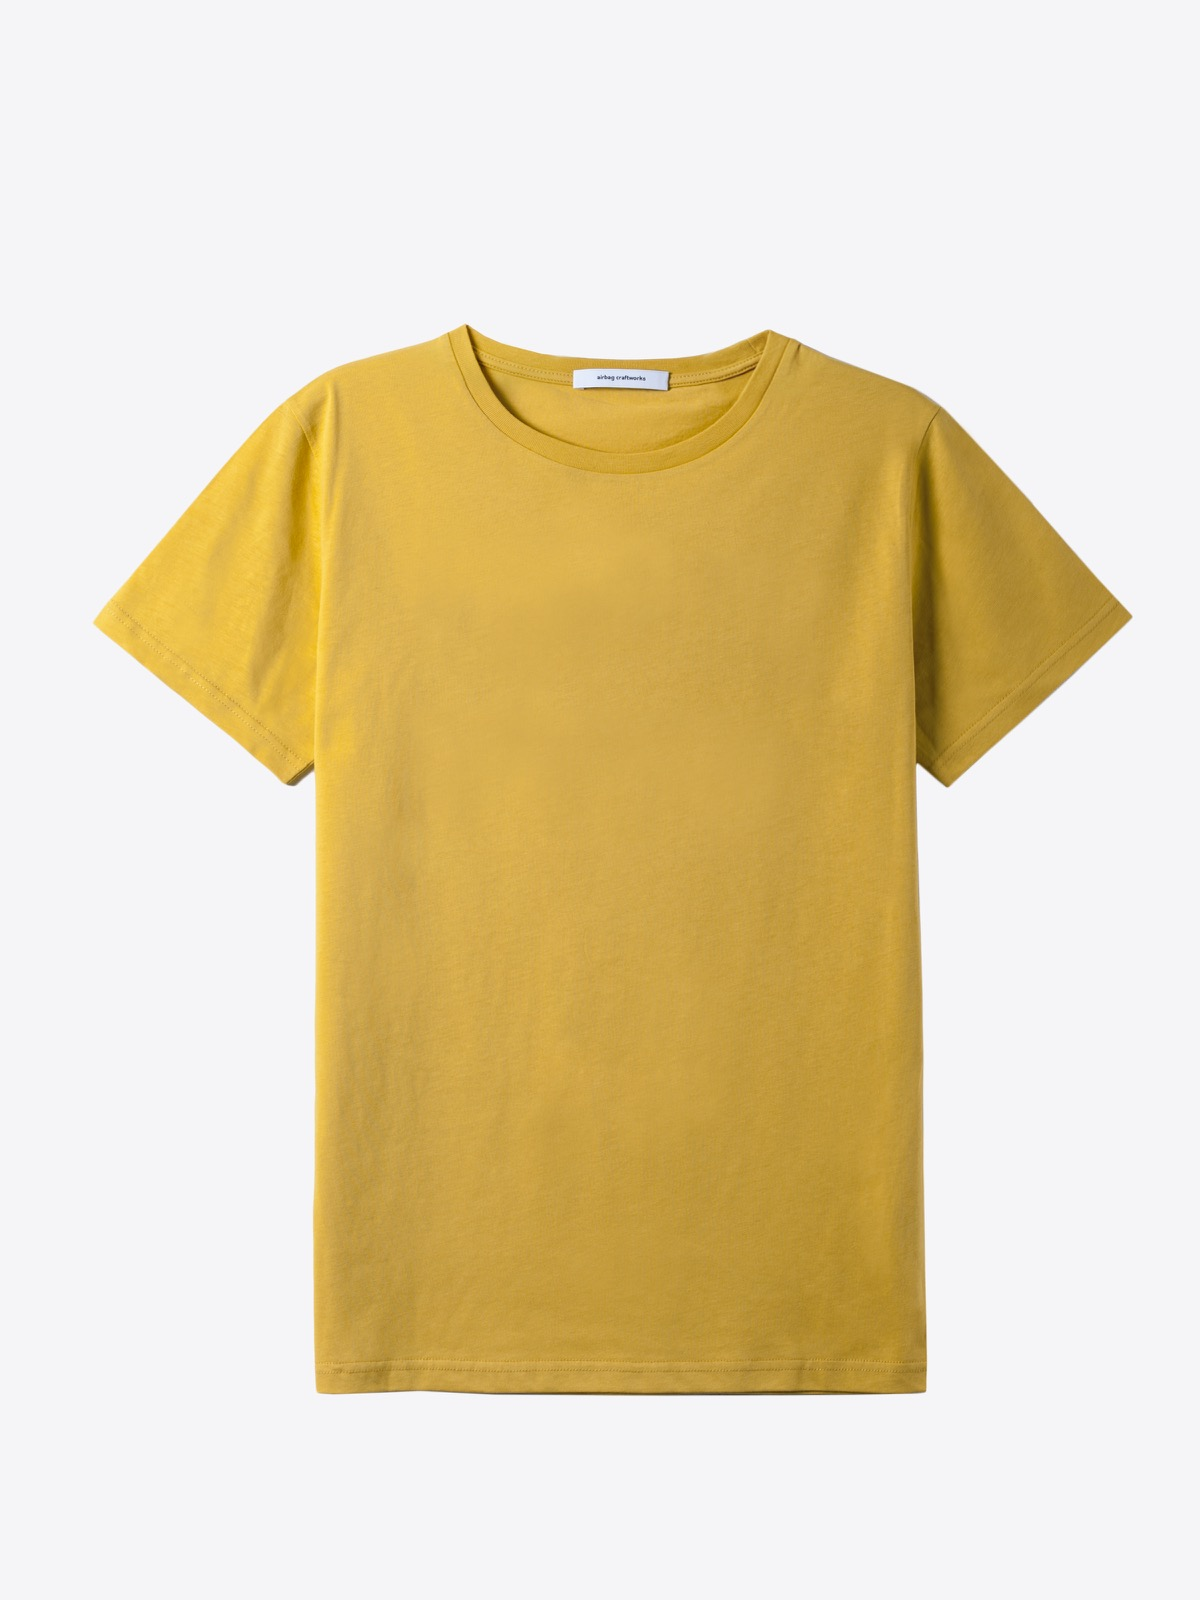 airbag craftworks  t 01 blank | gold